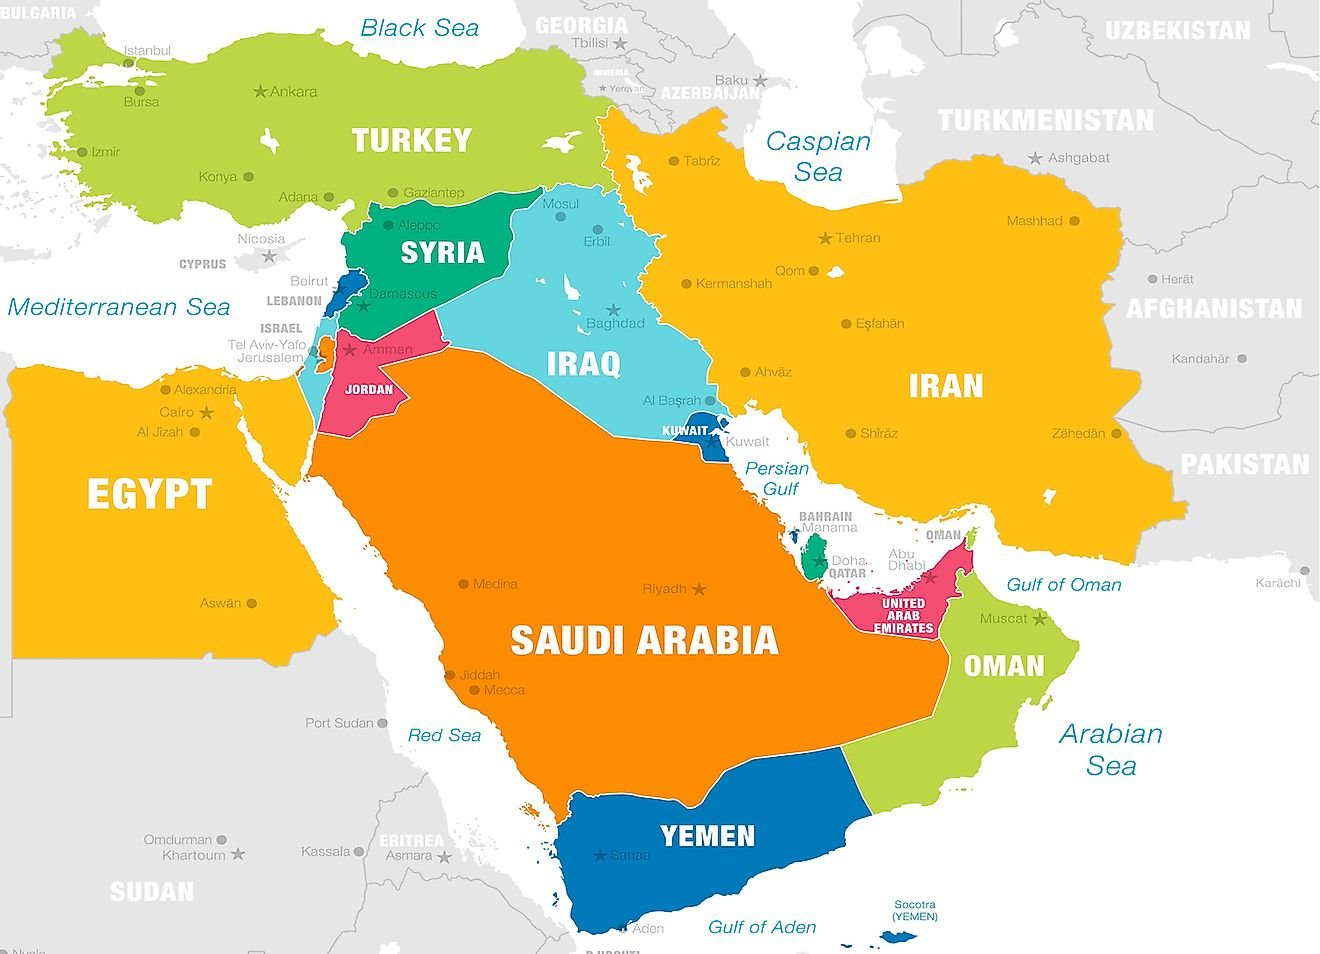 How Many Countries Are There In The Middle East?